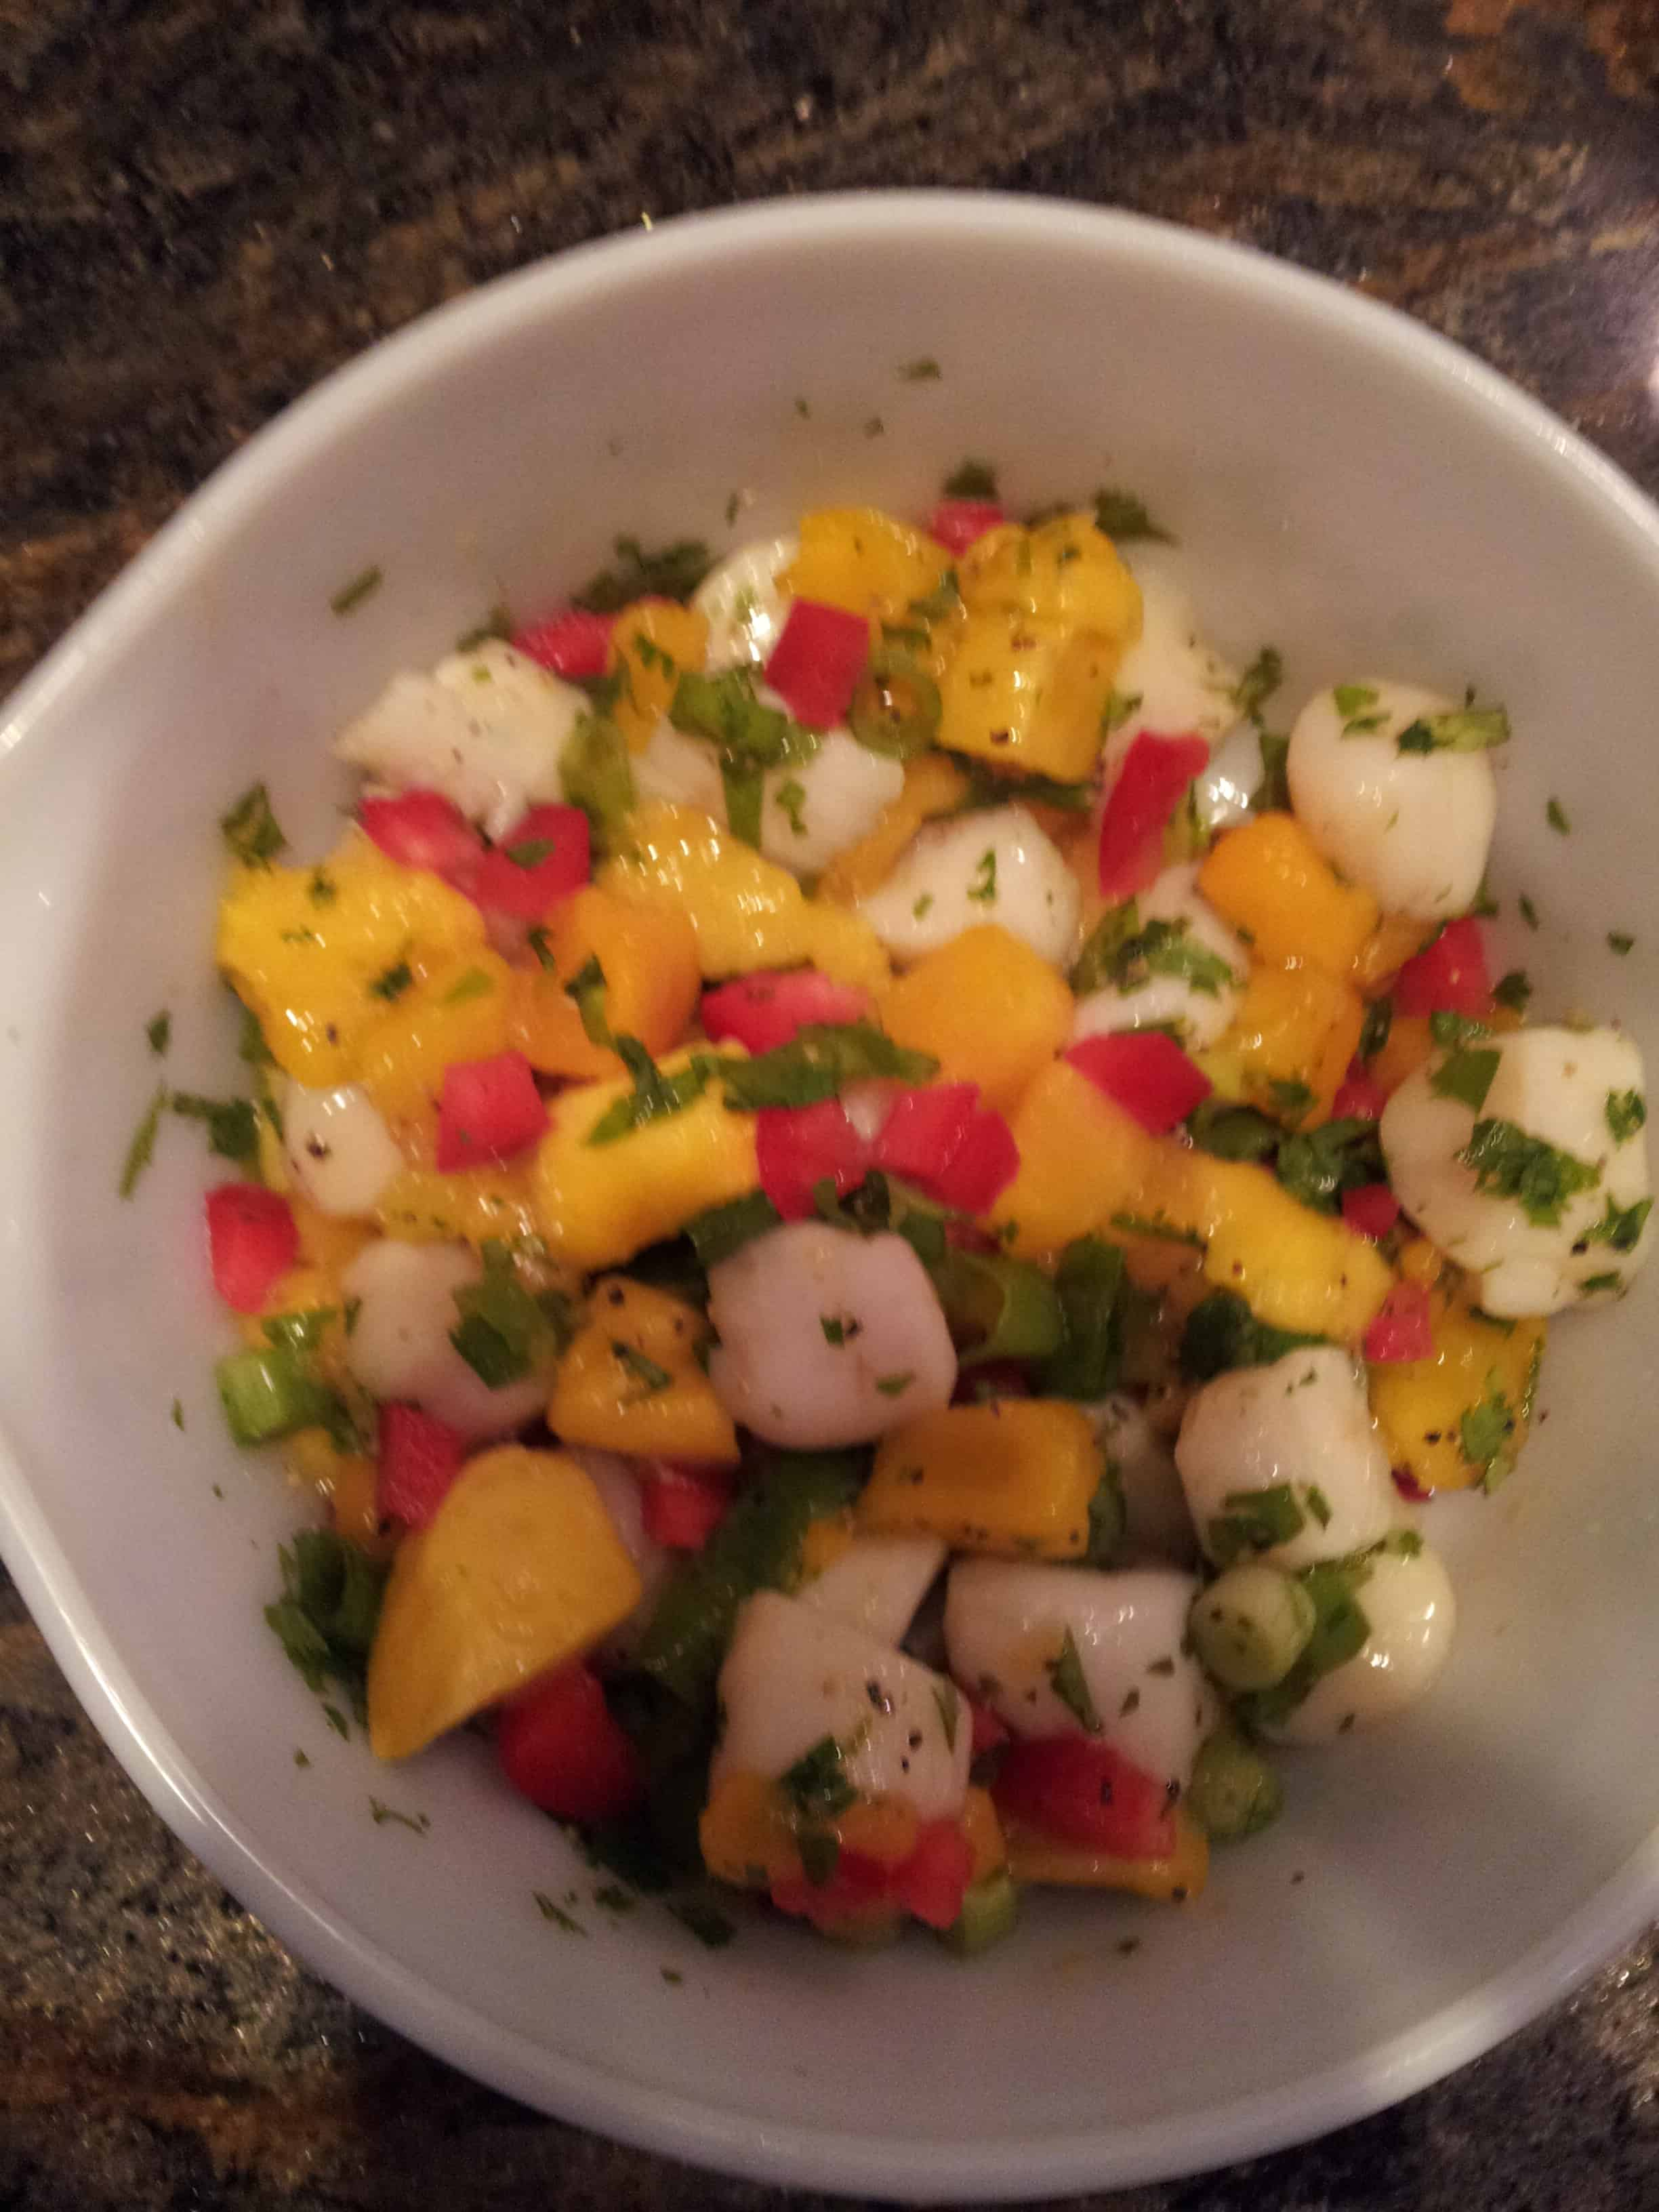 Scallop Ceviche with Mango and Orange | The Scallop Hunter